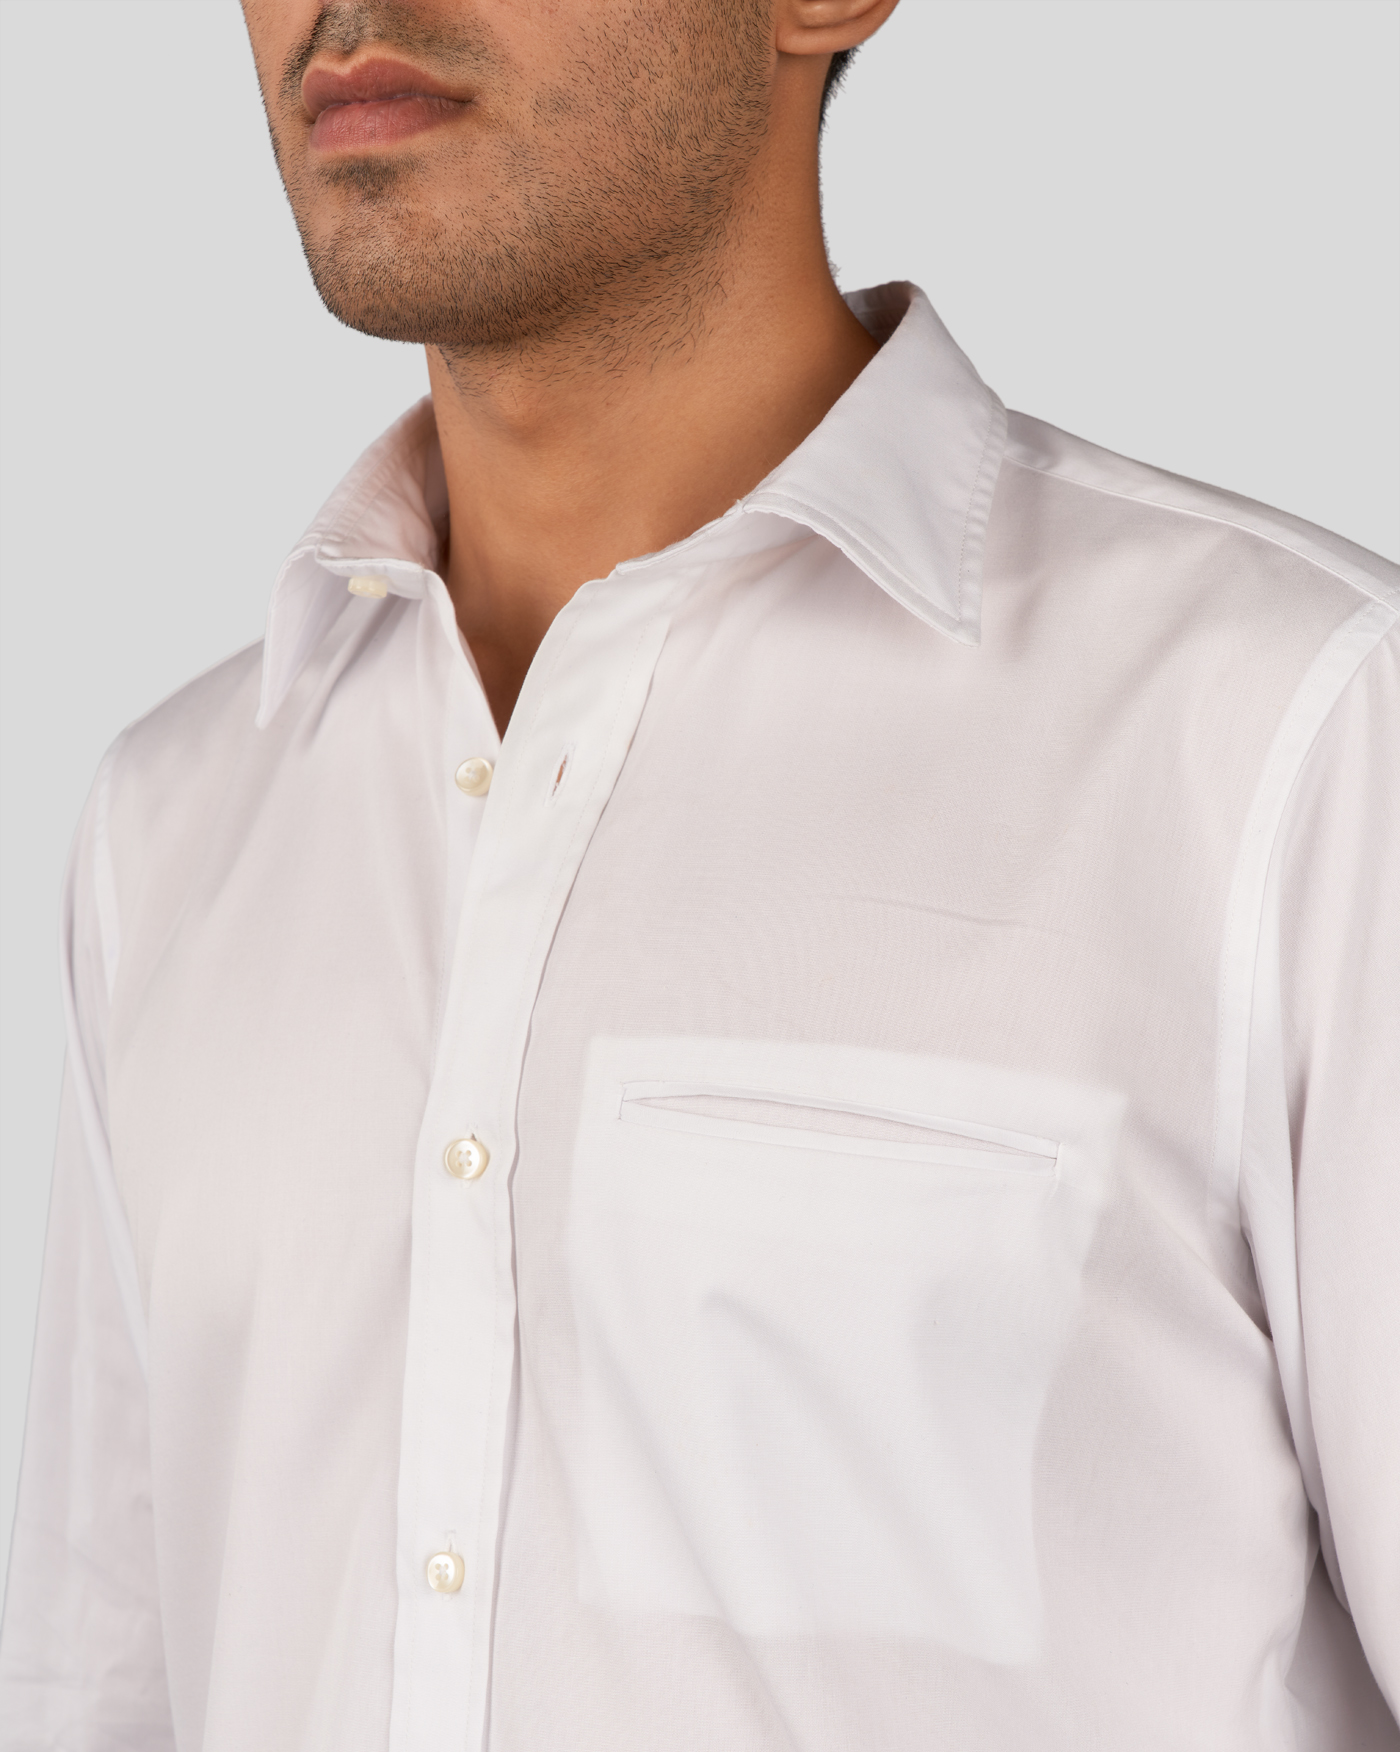 Feather White Welted Pocket Shirt